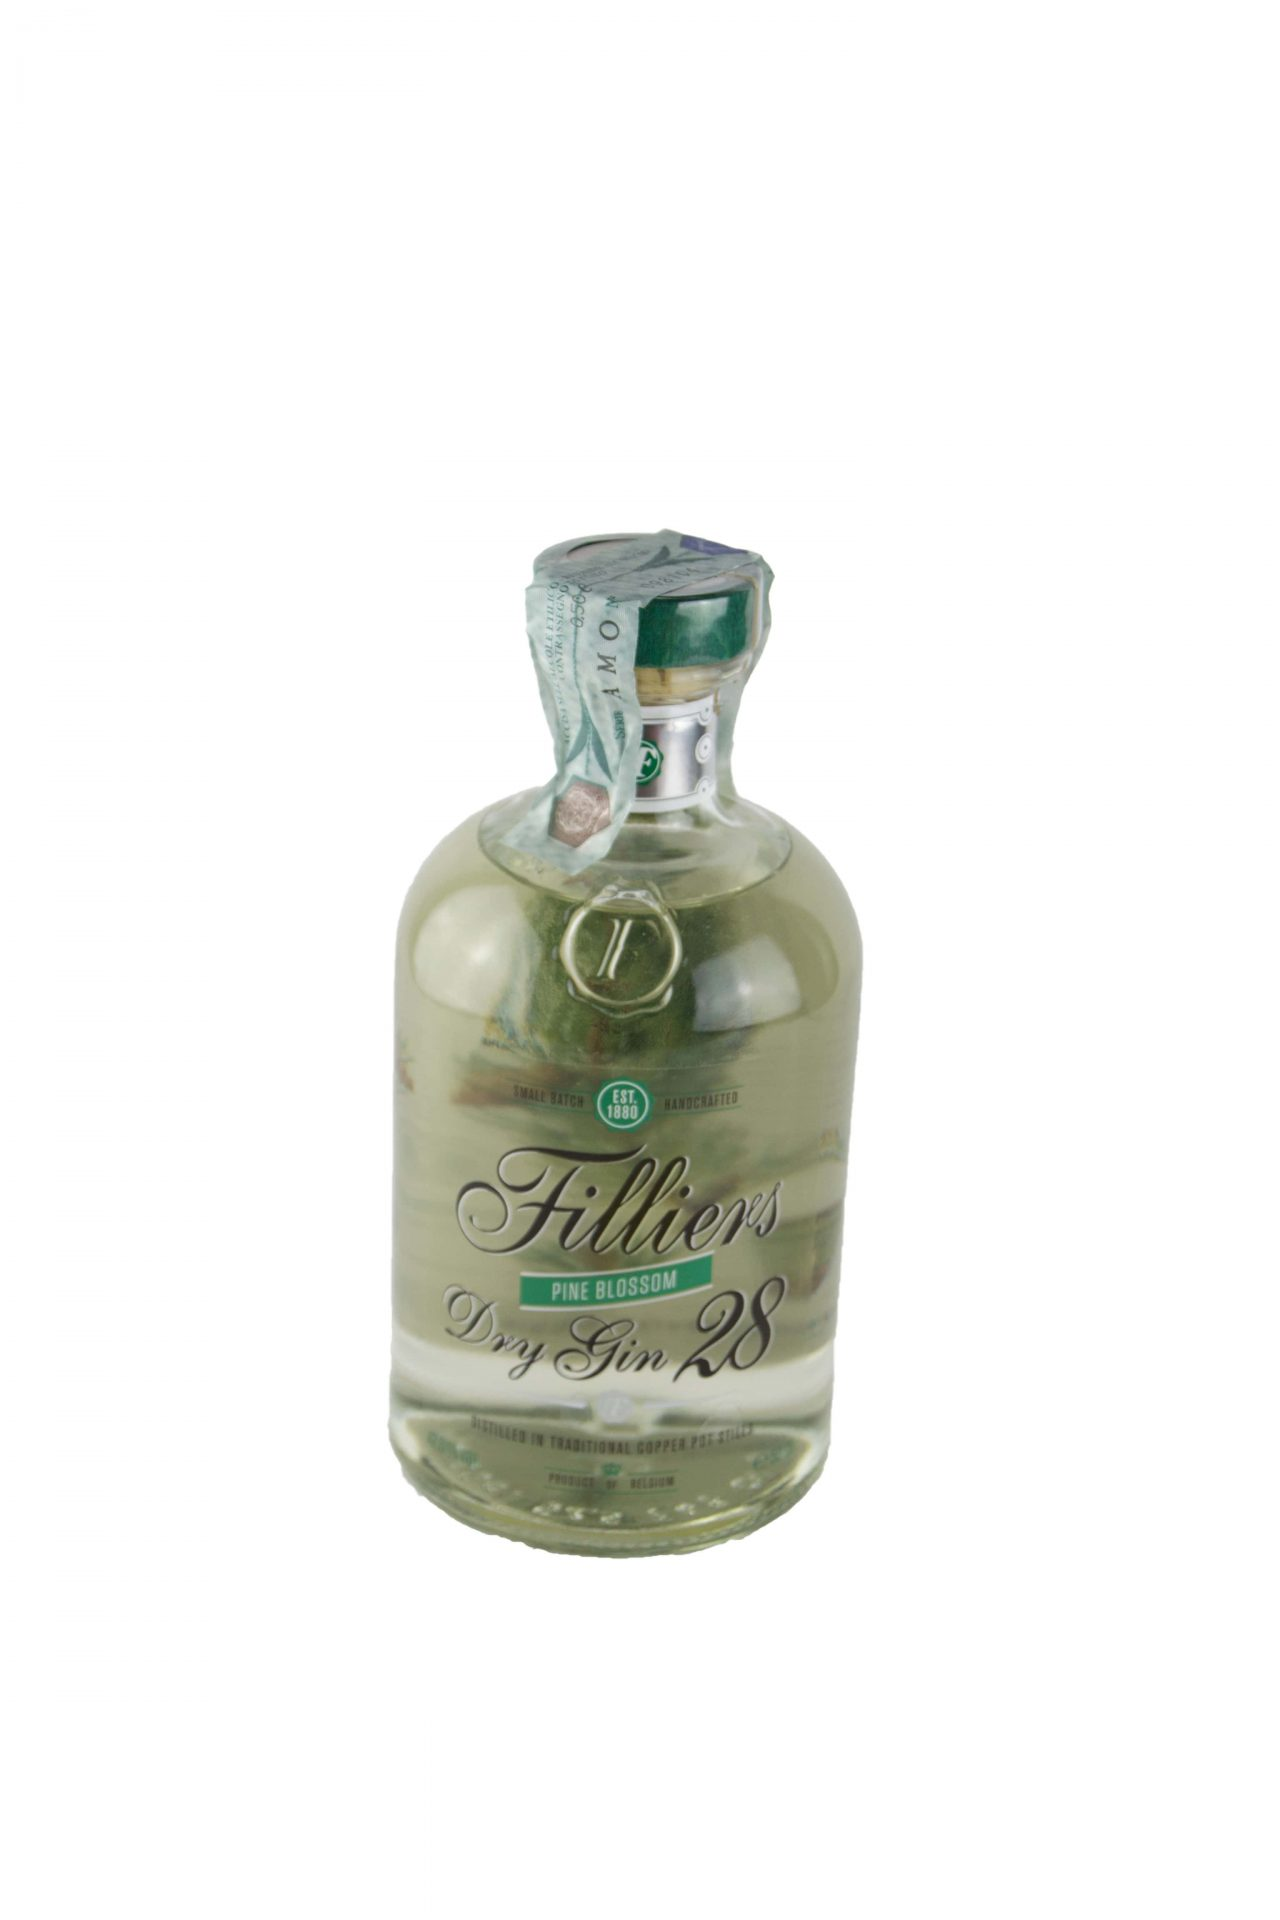 Filliers Dry Gin 28 Pine Blossom – Filliers